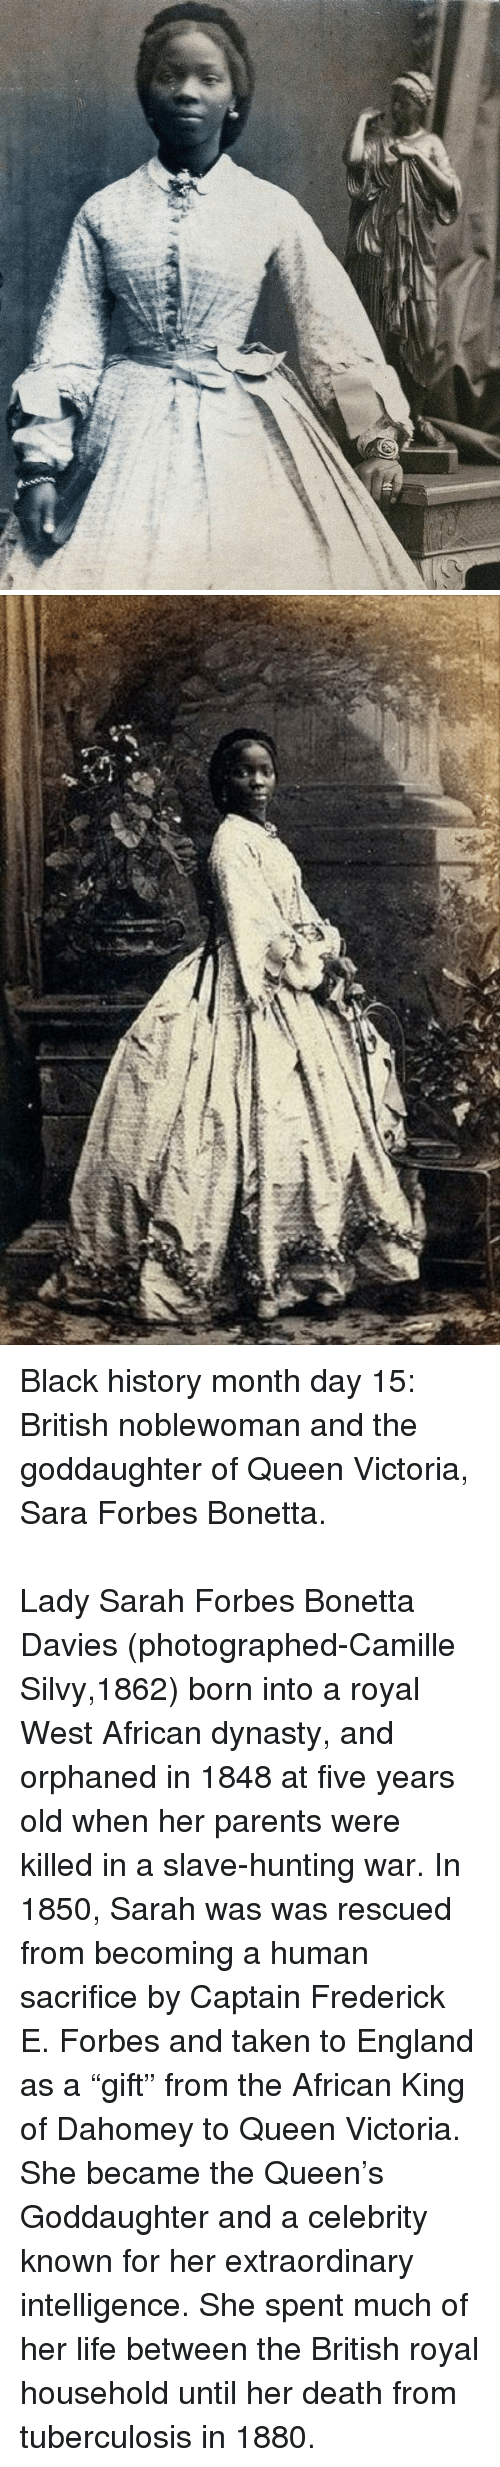 "Black History Month, England, and Life: <p>Black history month day 15: British noblewoman and the goddaughter of Queen Victoria, Sara Forbes Bonetta.</p>  <br/><p>Lady Sarah Forbes Bonetta Davies (photographed-Camille Silvy,1862) born into a royal West African dynasty, and orphaned in 1848 at five years old when her parents were killed in a slave-hunting war. In 1850, Sarah was was rescued from becoming a human sacrifice by Captain Frederick E. Forbes and taken to England as a ""gift"" from the African King of Dahomey to Queen Victoria. She became the Queen's Goddaughter and a celebrity known for her extraordinary intelligence. She spent much of her life between the British royal household until her death from tuberculosis in 1880.</p>"